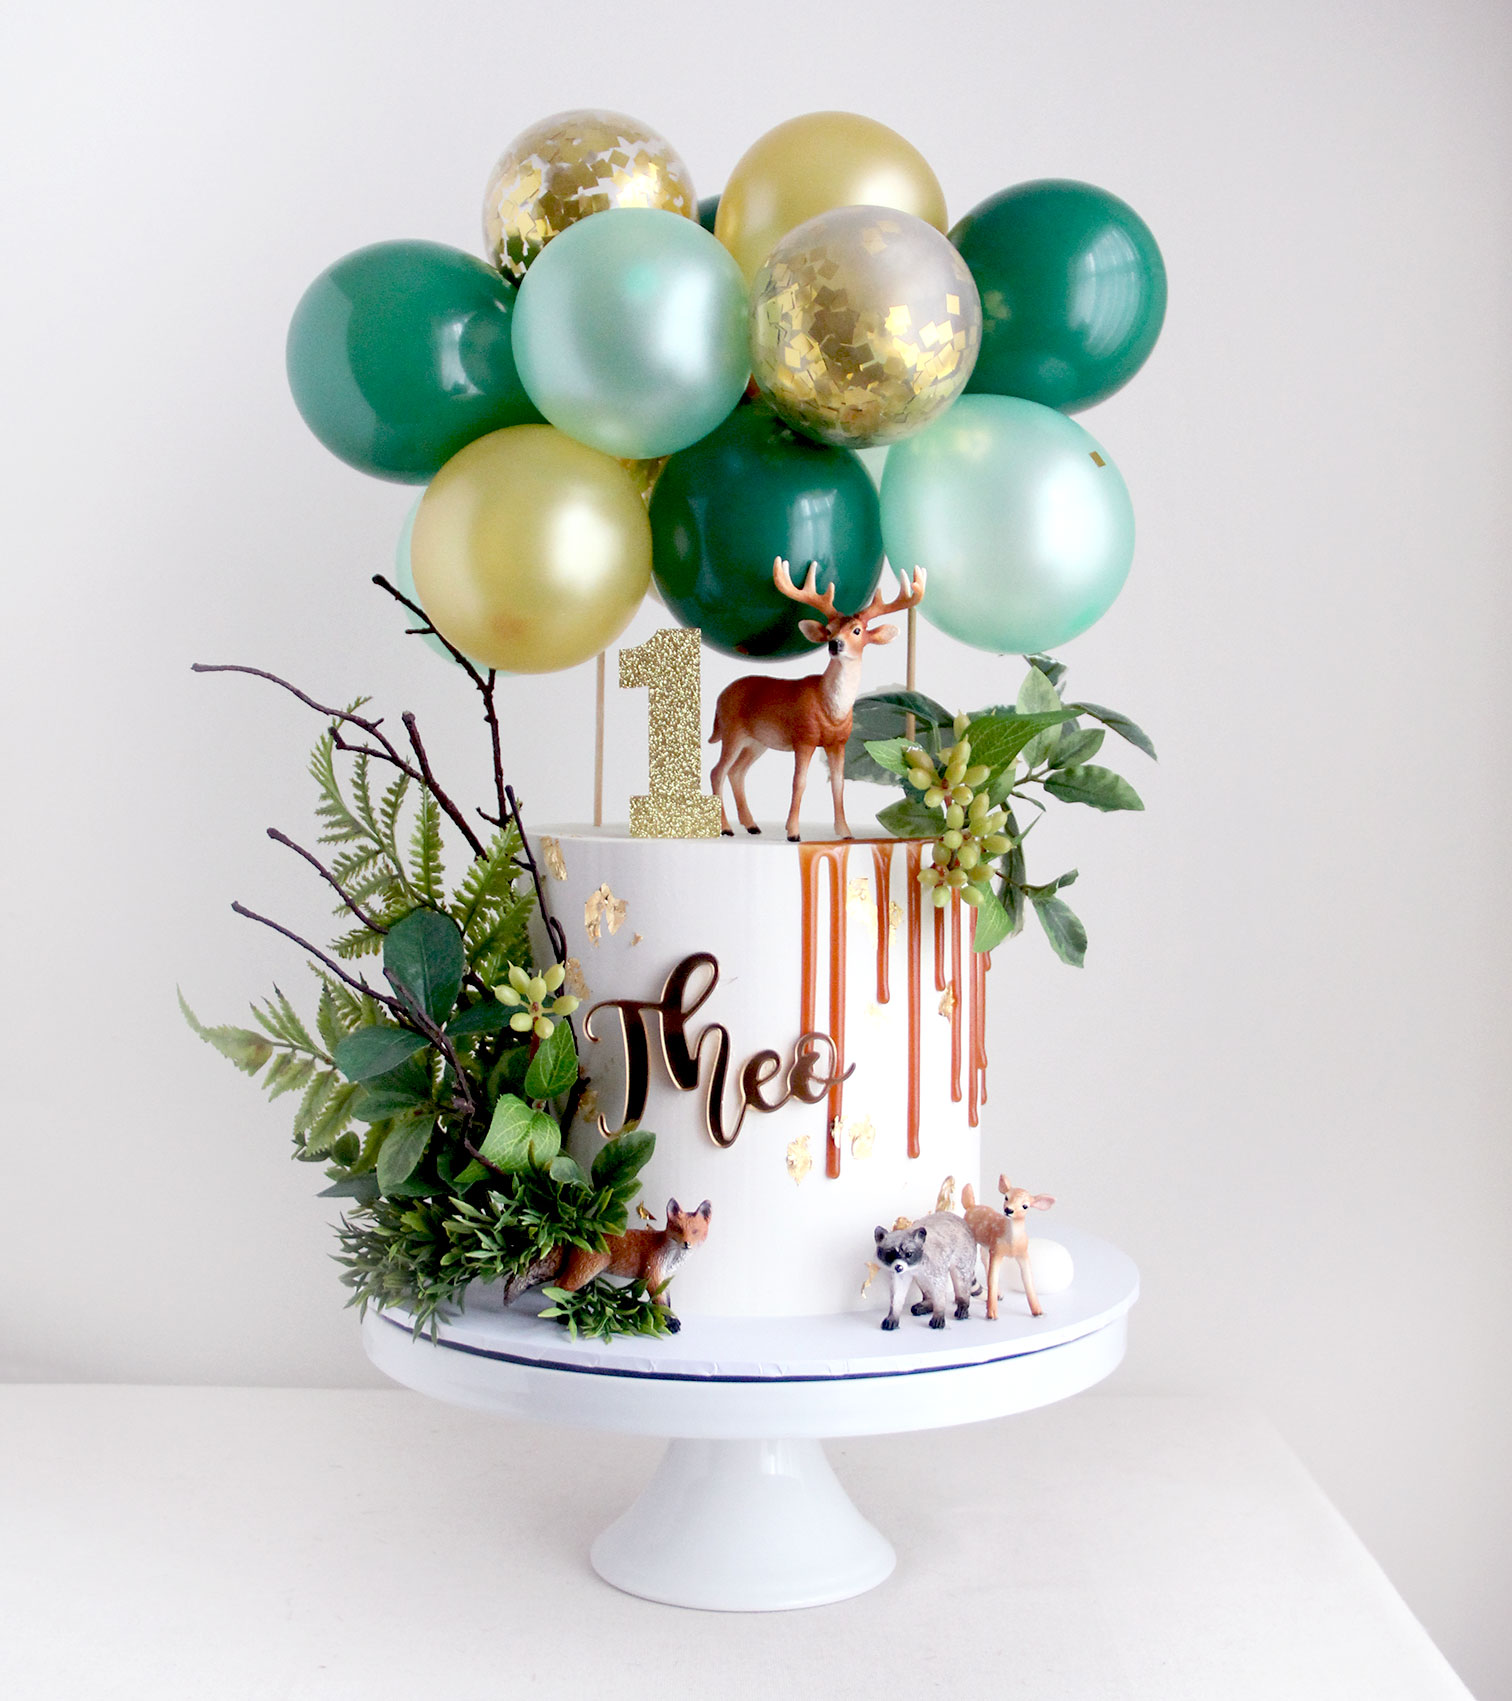 Woodland Theme Cake with Balloons